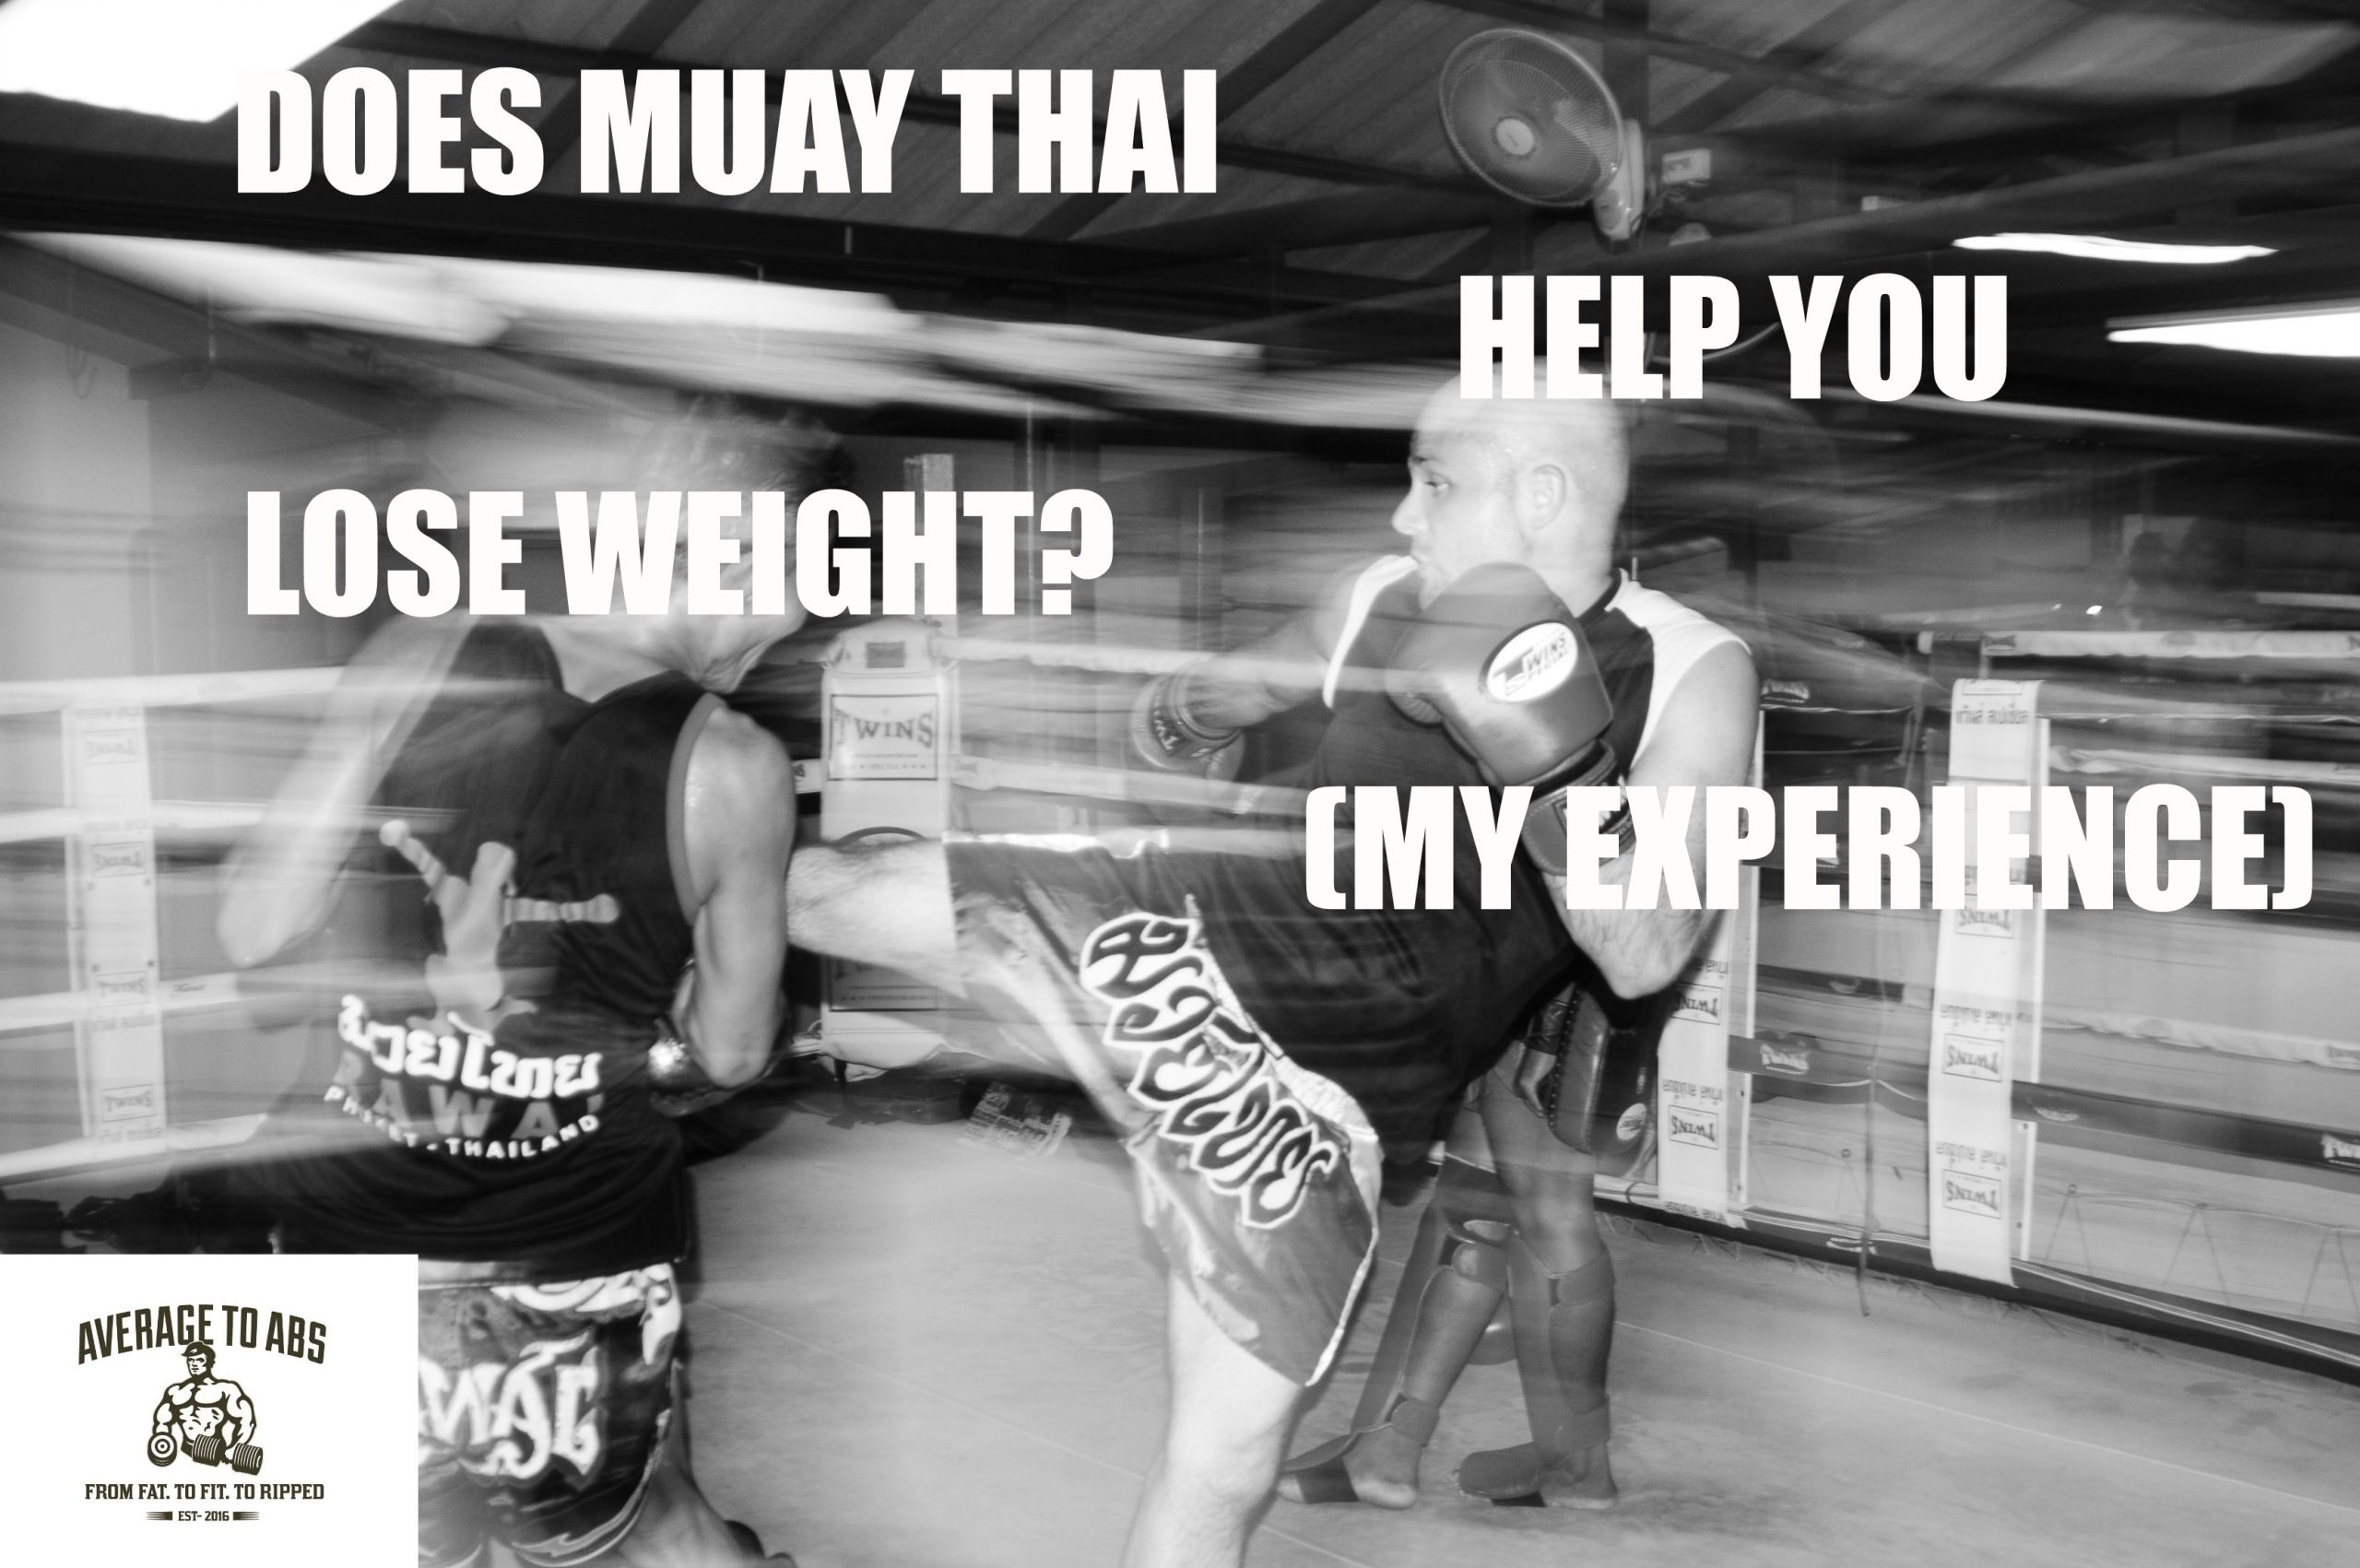 Thai Weight Loss Exercise  Does Muay Thai Help You Lose Weight My Experience